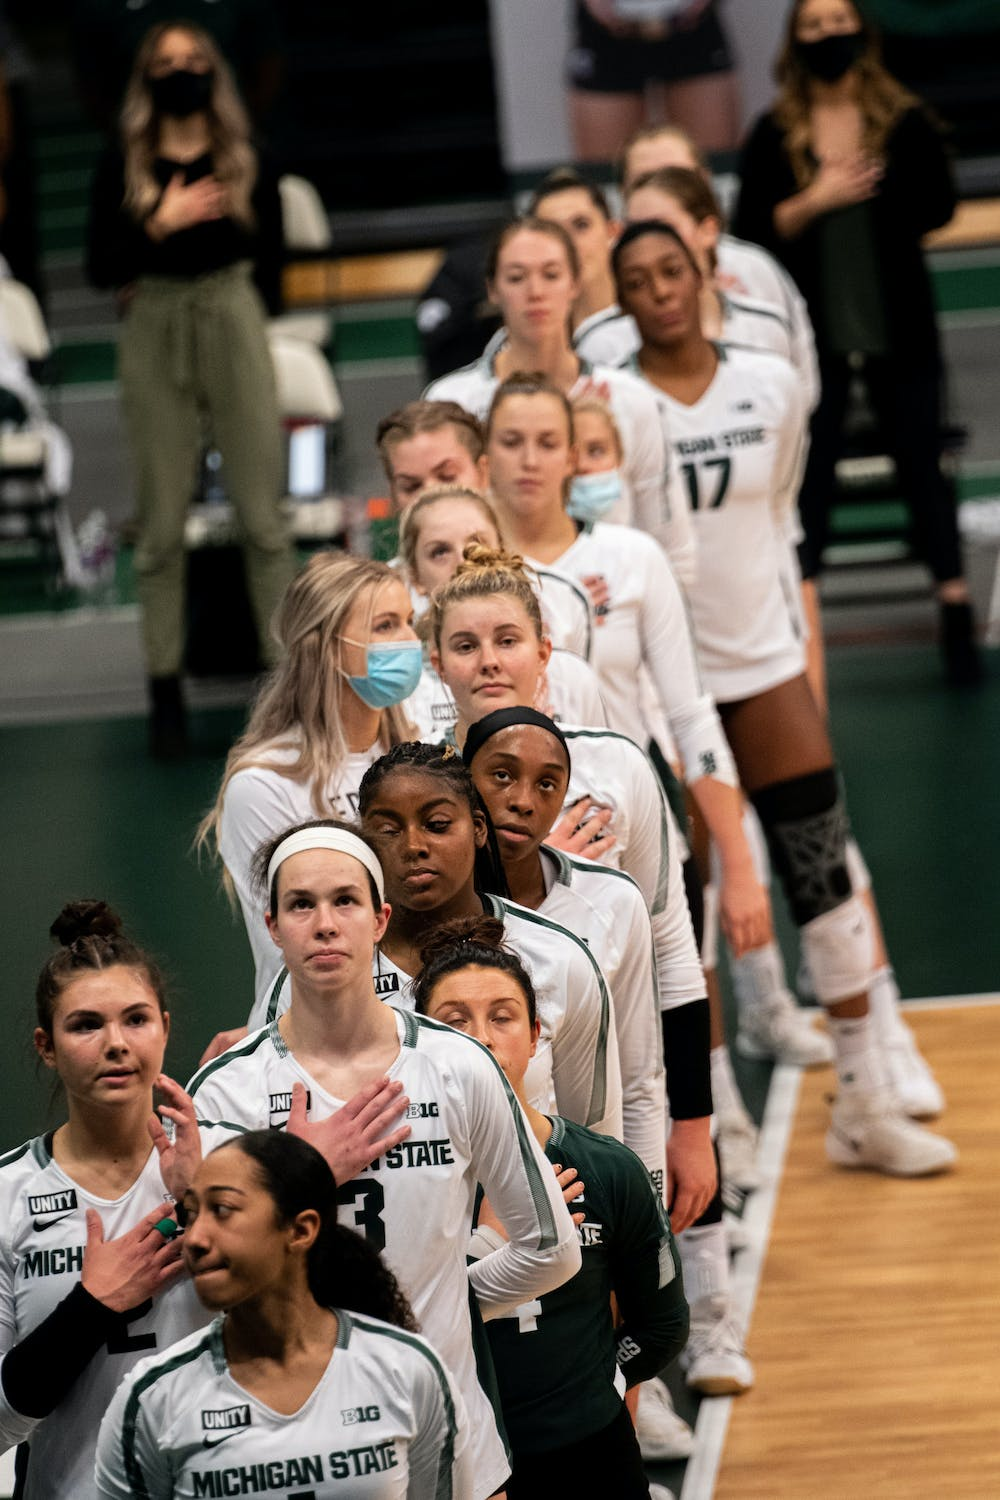 Michigan State Volleyball listens to the national anthem, prior to their loss to Ohio State on Jan. 31, 2021.